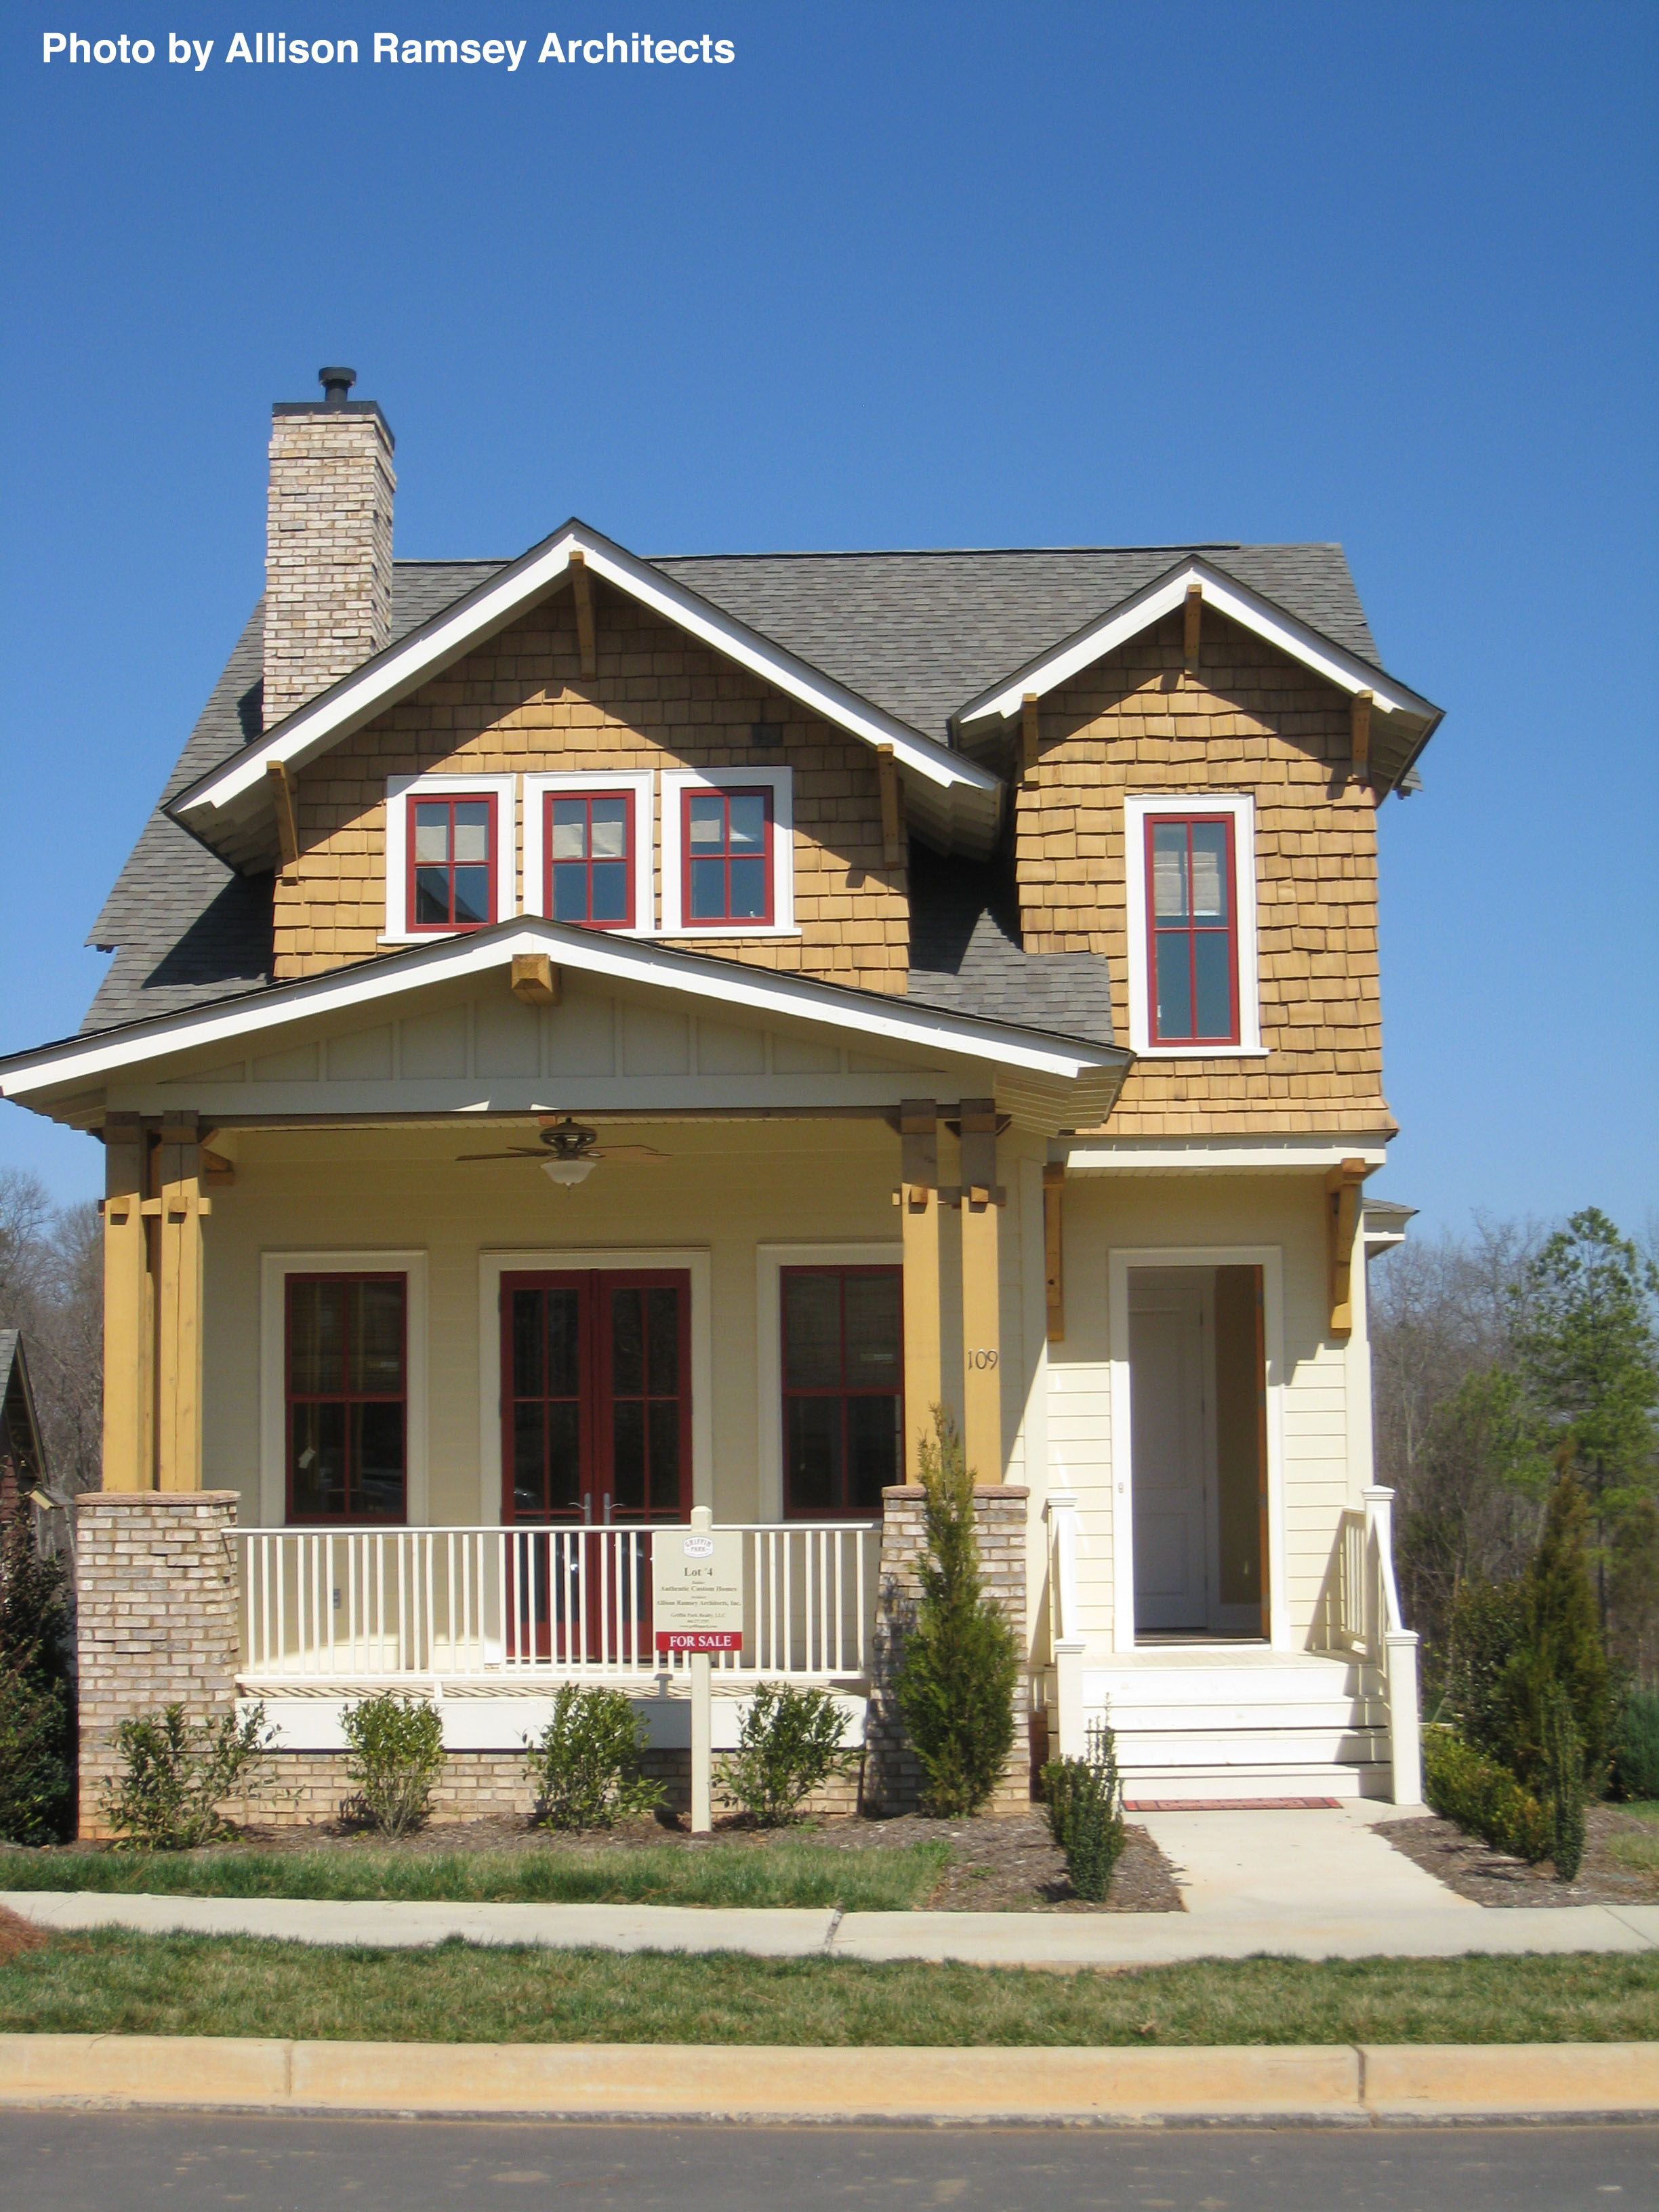 Popular house paint colors for 2014 home exteriors - Popular exterior paint colors 2014 ...